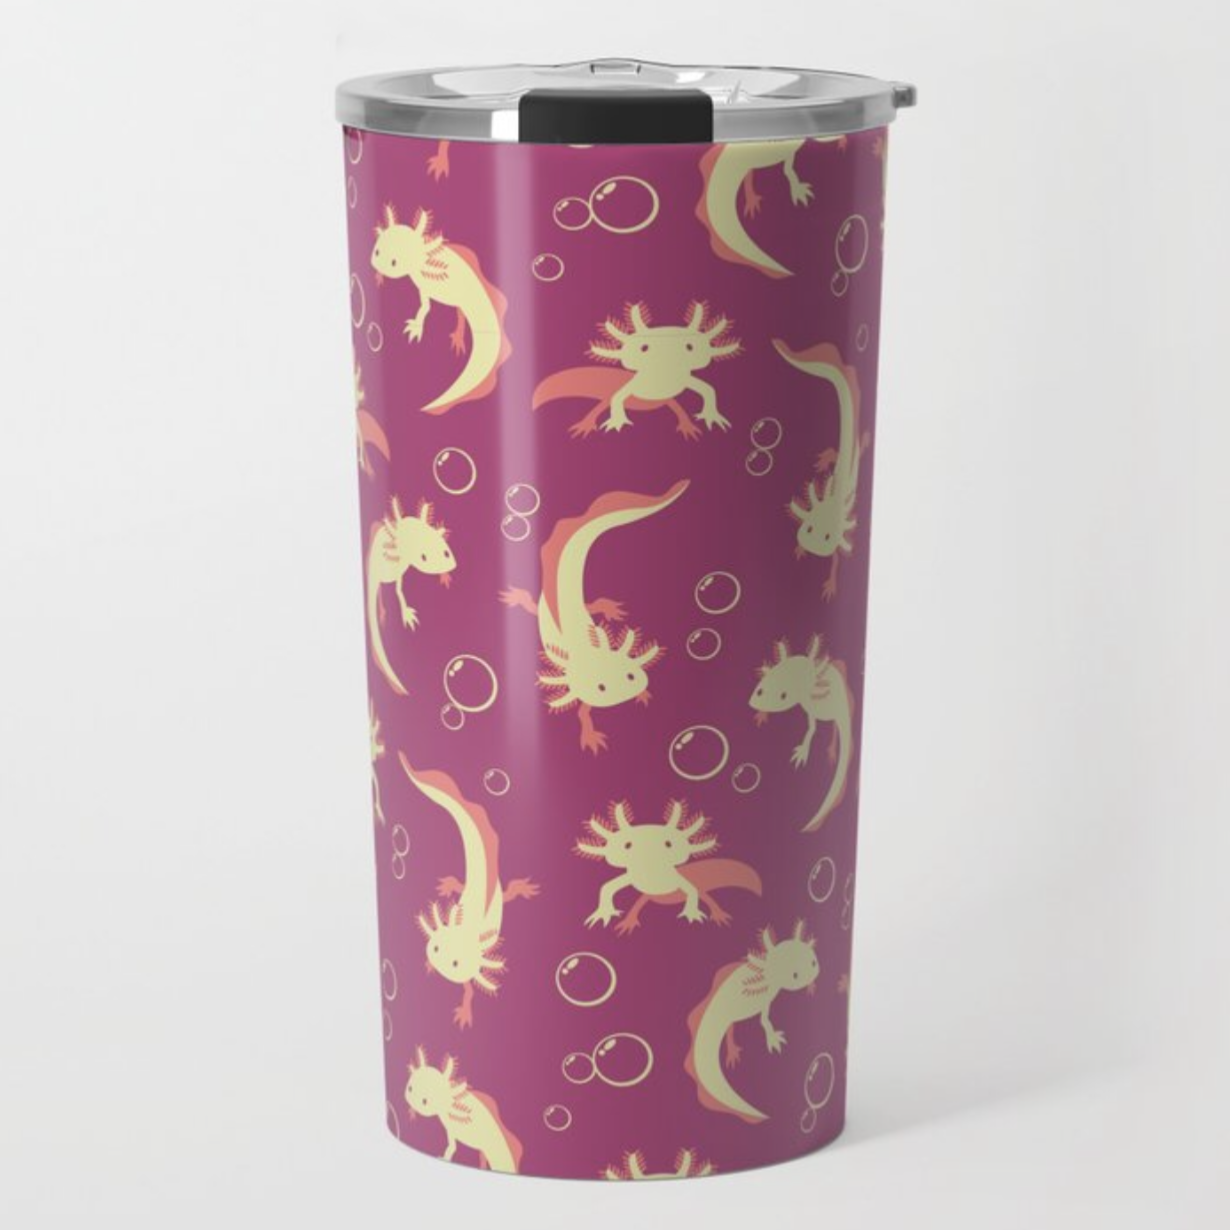 Relaxolotl rose thermos from Society6